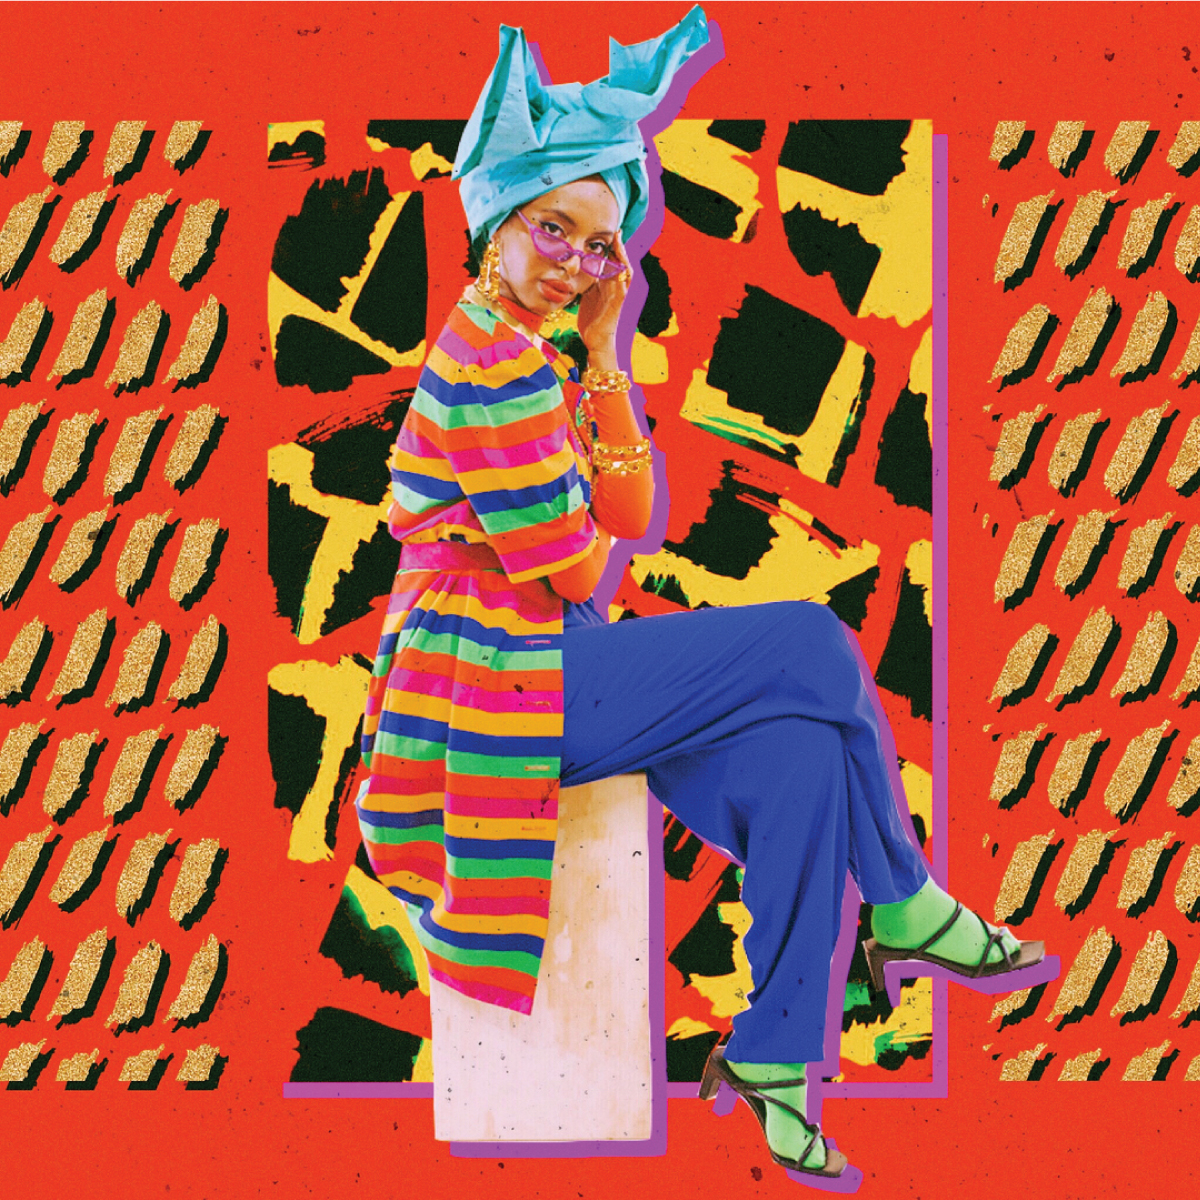 Colorful fashion photography illustration with model wearing colored clothing and head wrap